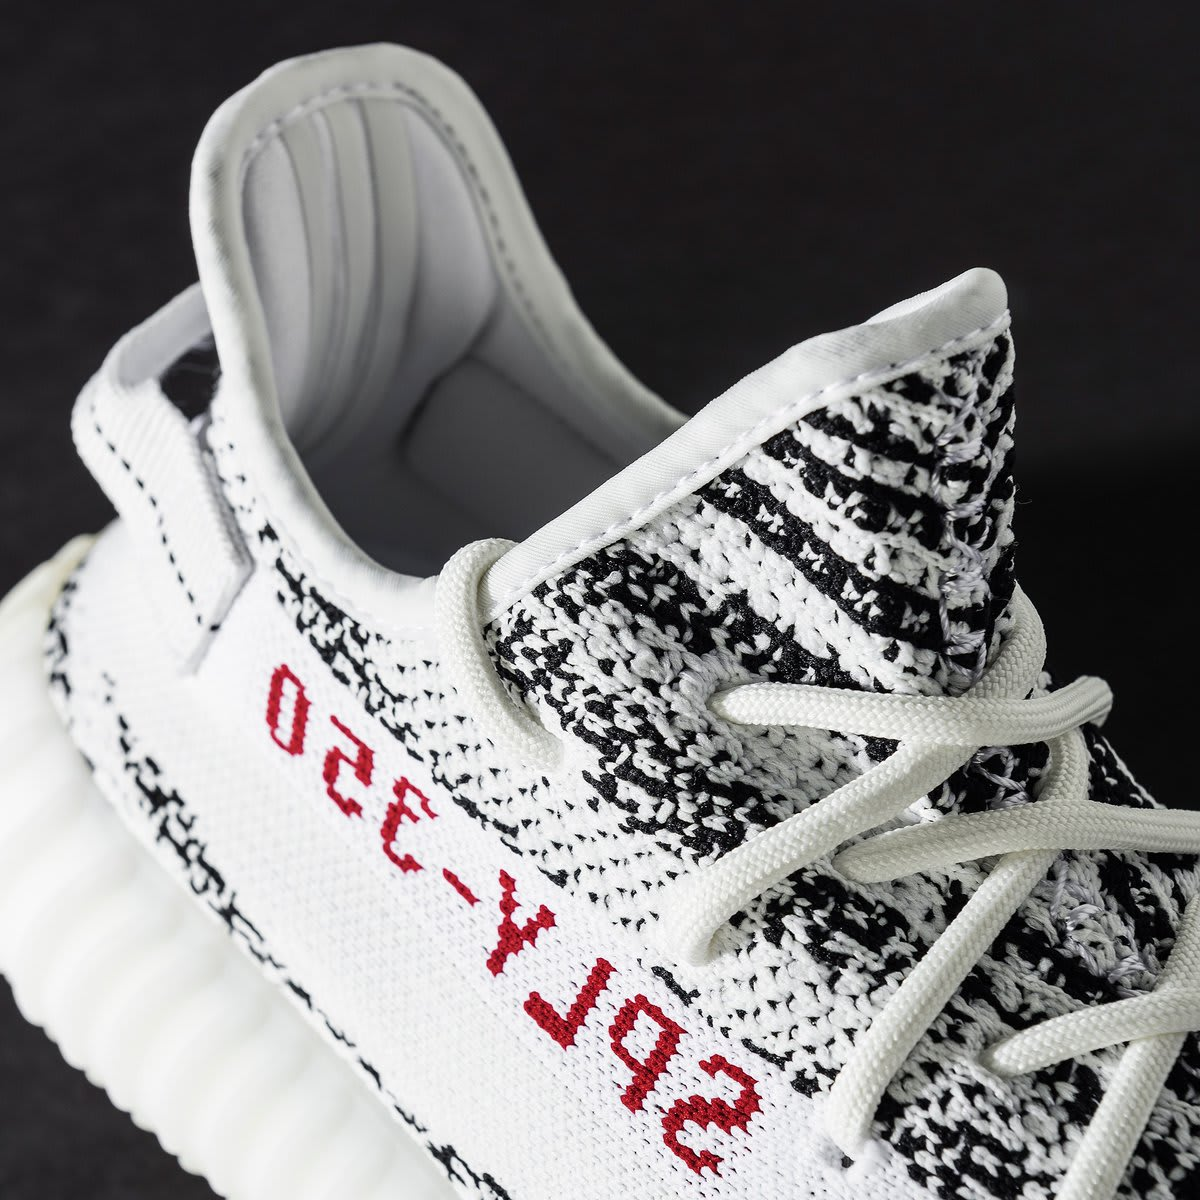 Adidas Yeezy 350 Boost 'Moonrock' AQ 2660 100% Authentic